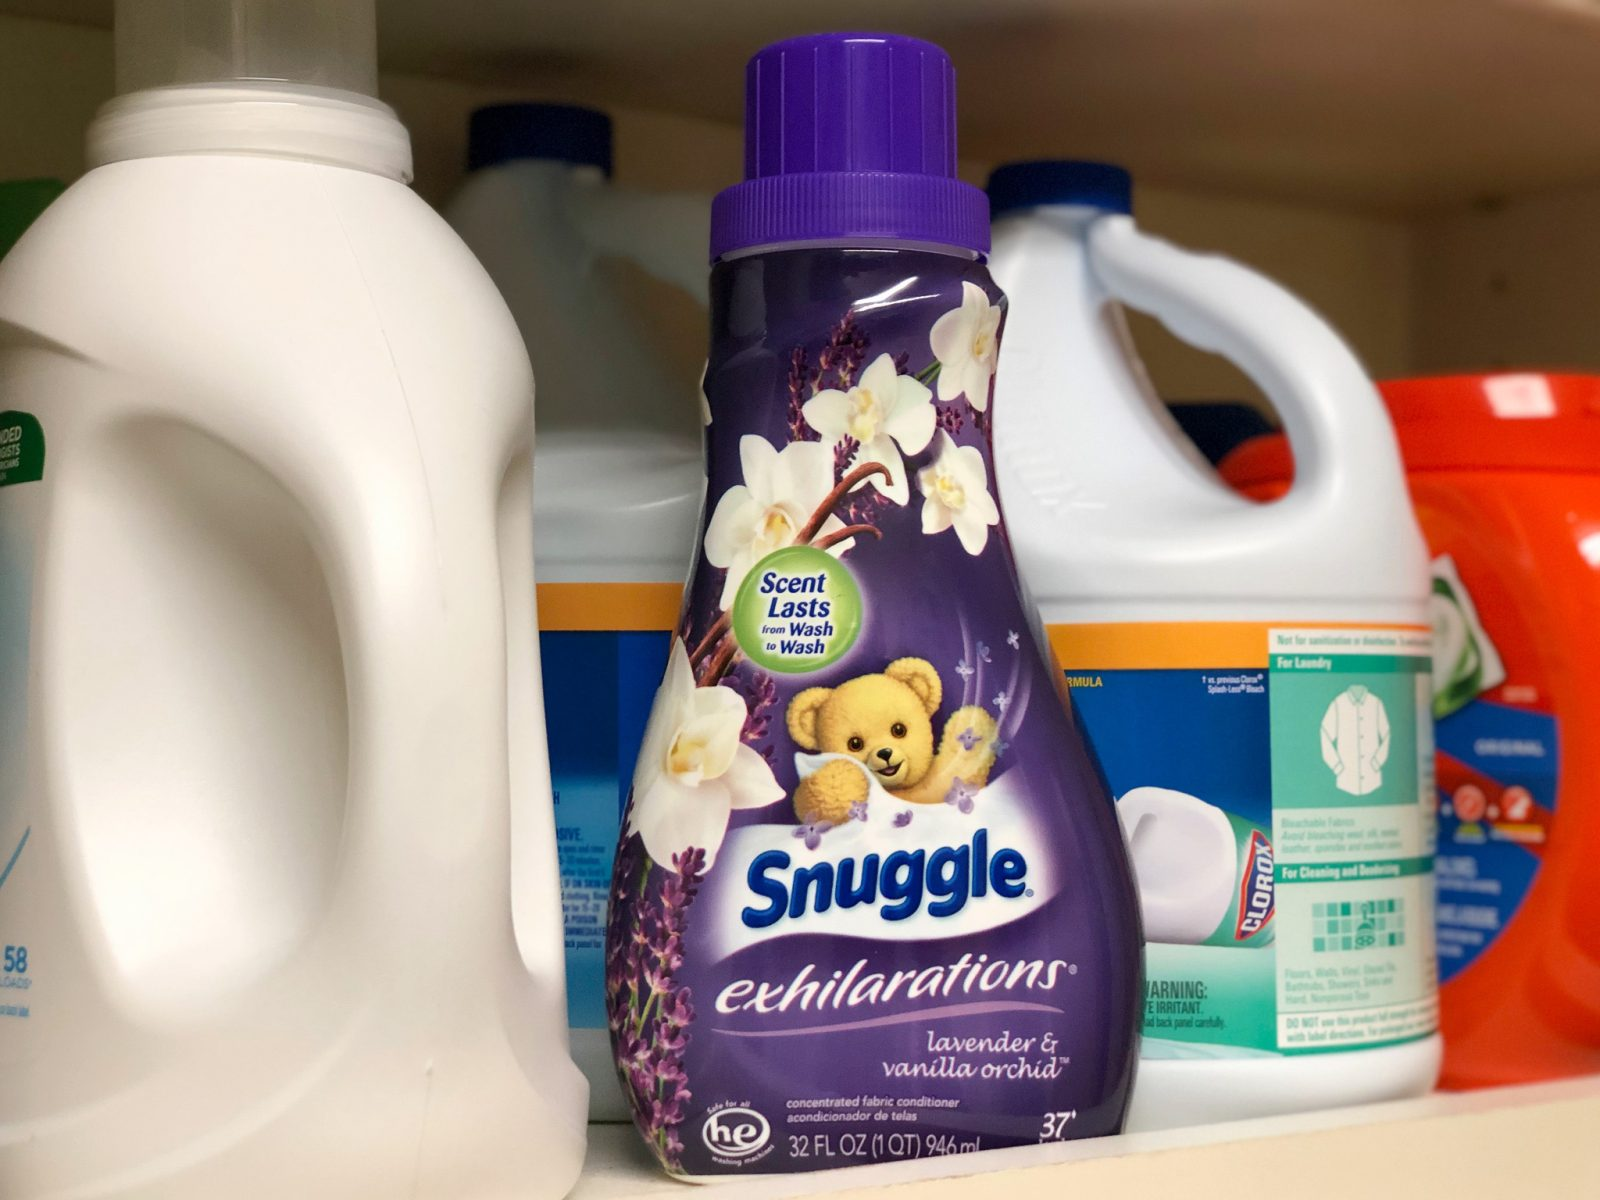 Snuggle Products As Low As $2 At Publix on I Heart Publix 2